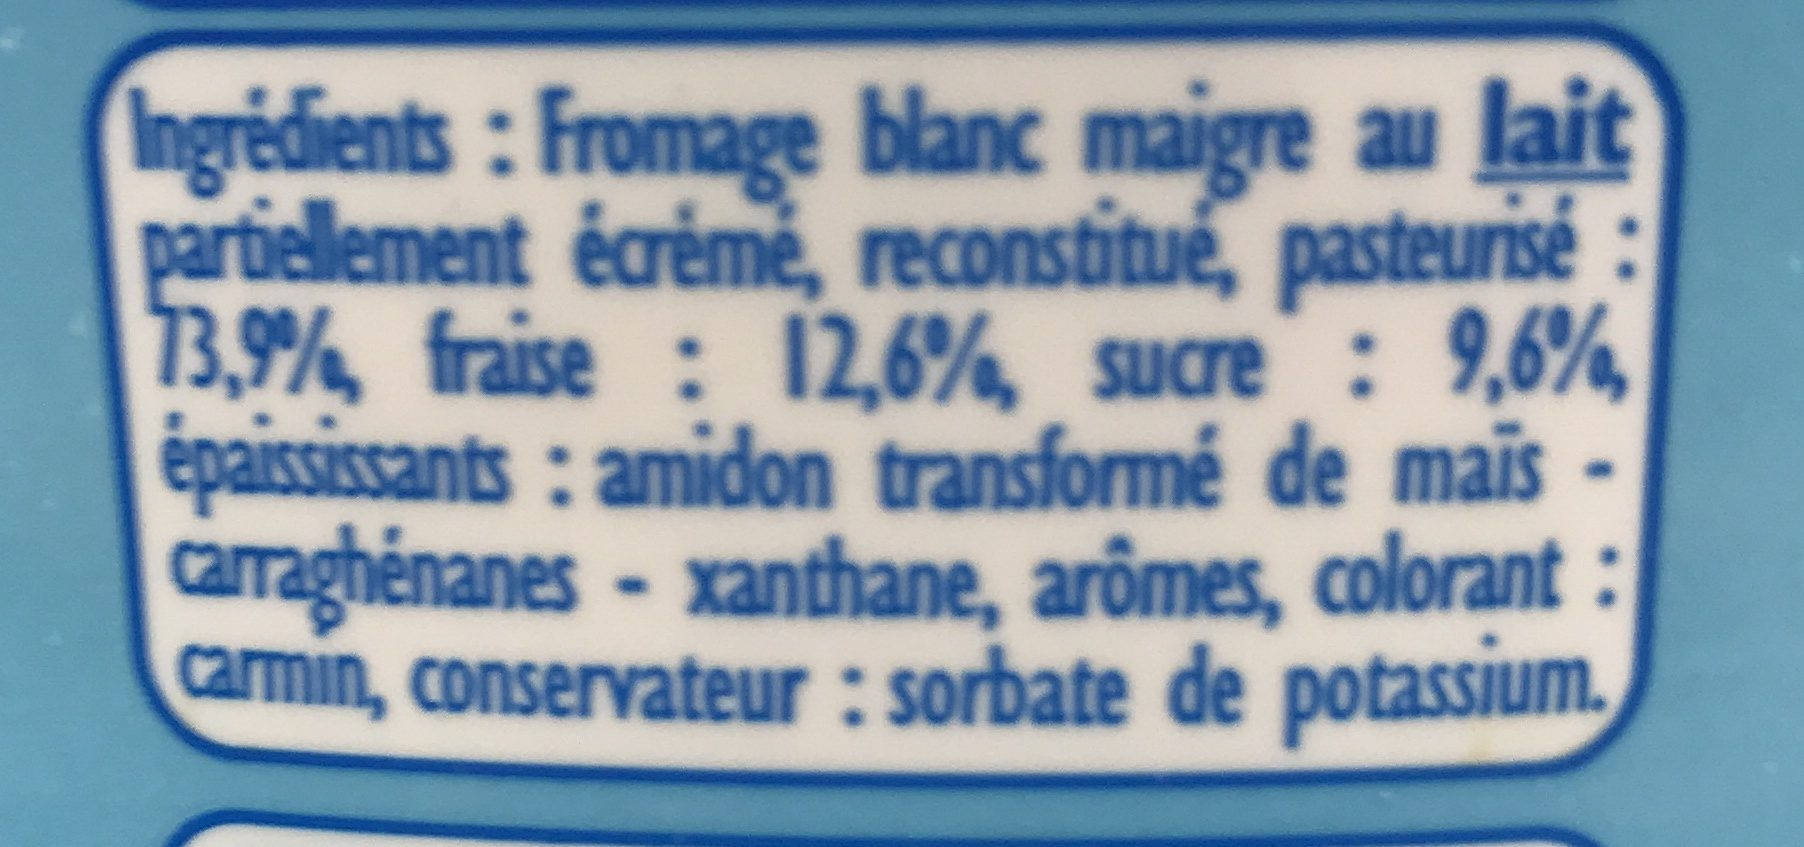 Fromage blanc maigre sucré Fraise - Ingredients - fr